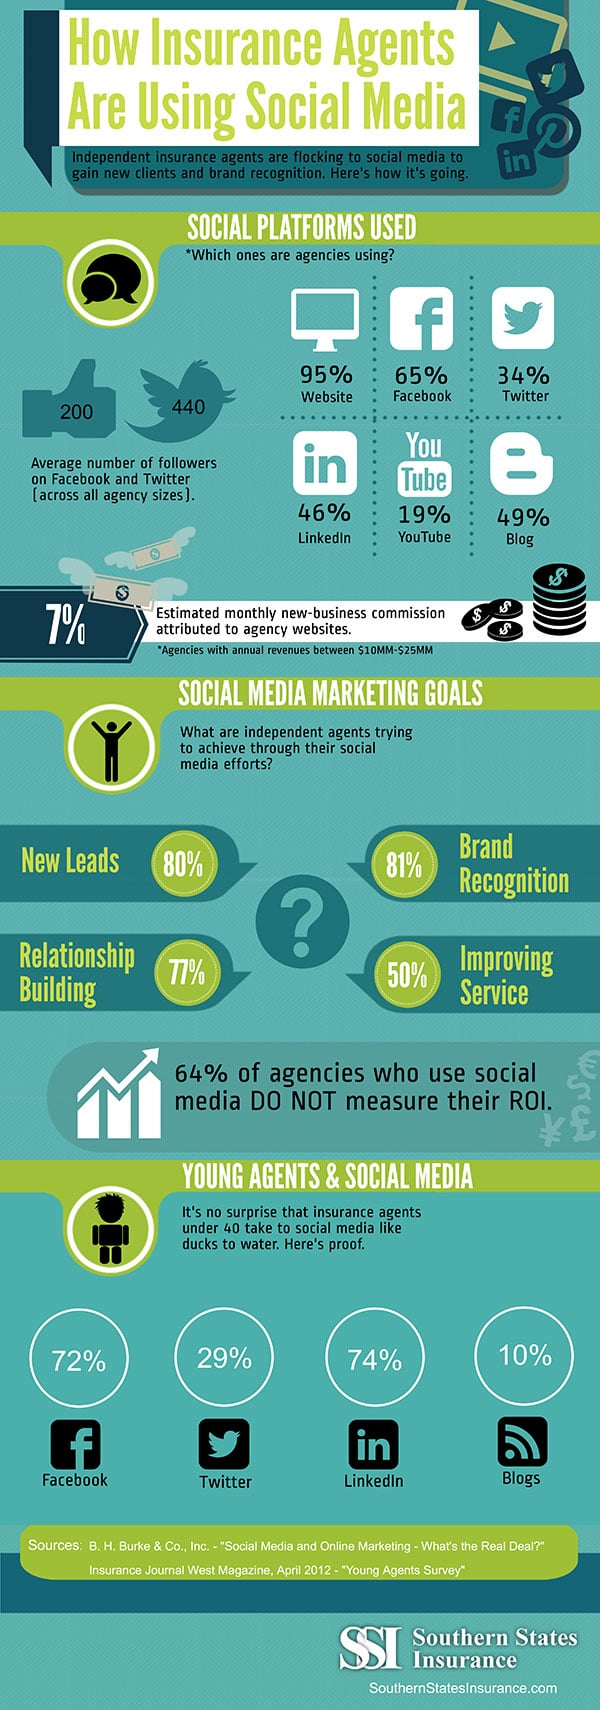 How insurance agents are using social media infographic